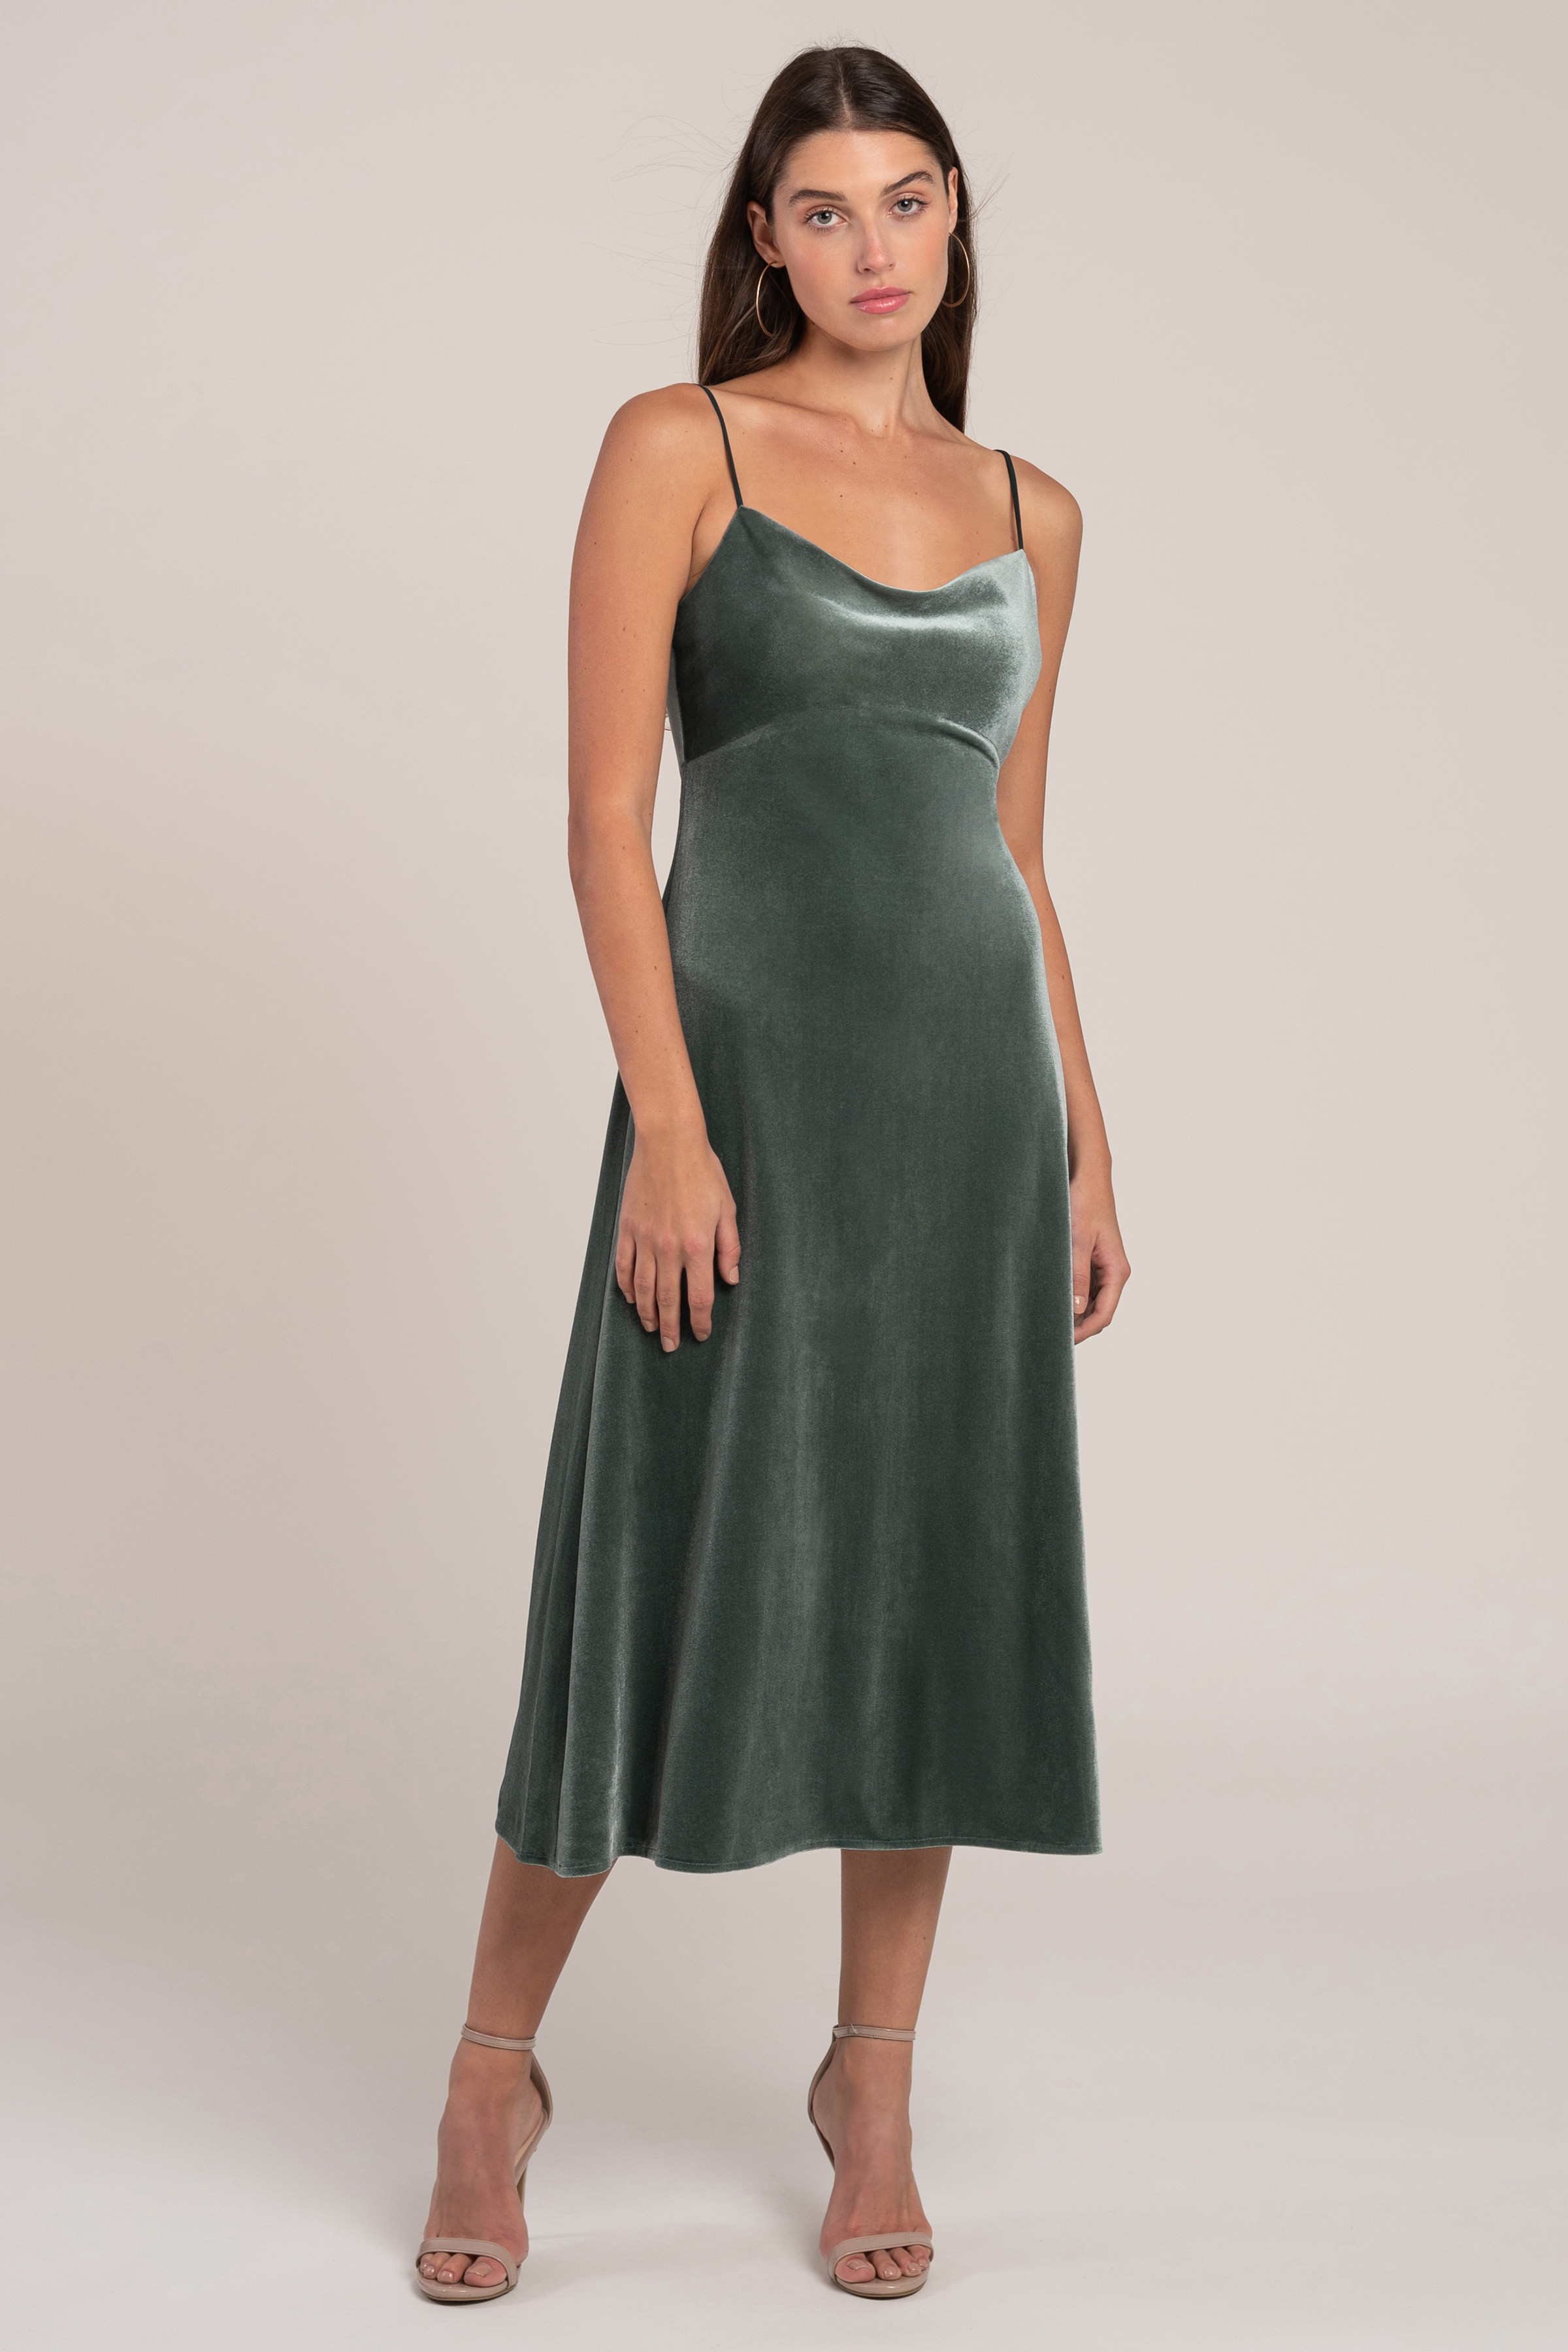 The Saba velvet midi length cowl neck slip bridesmaid dress is an effortlessly glamorous choice for any wedding or event. With the delicate spaghetti straps, gentle cowl neckline, and elongating empire waist seam, this style is incredibly chic and versatile.